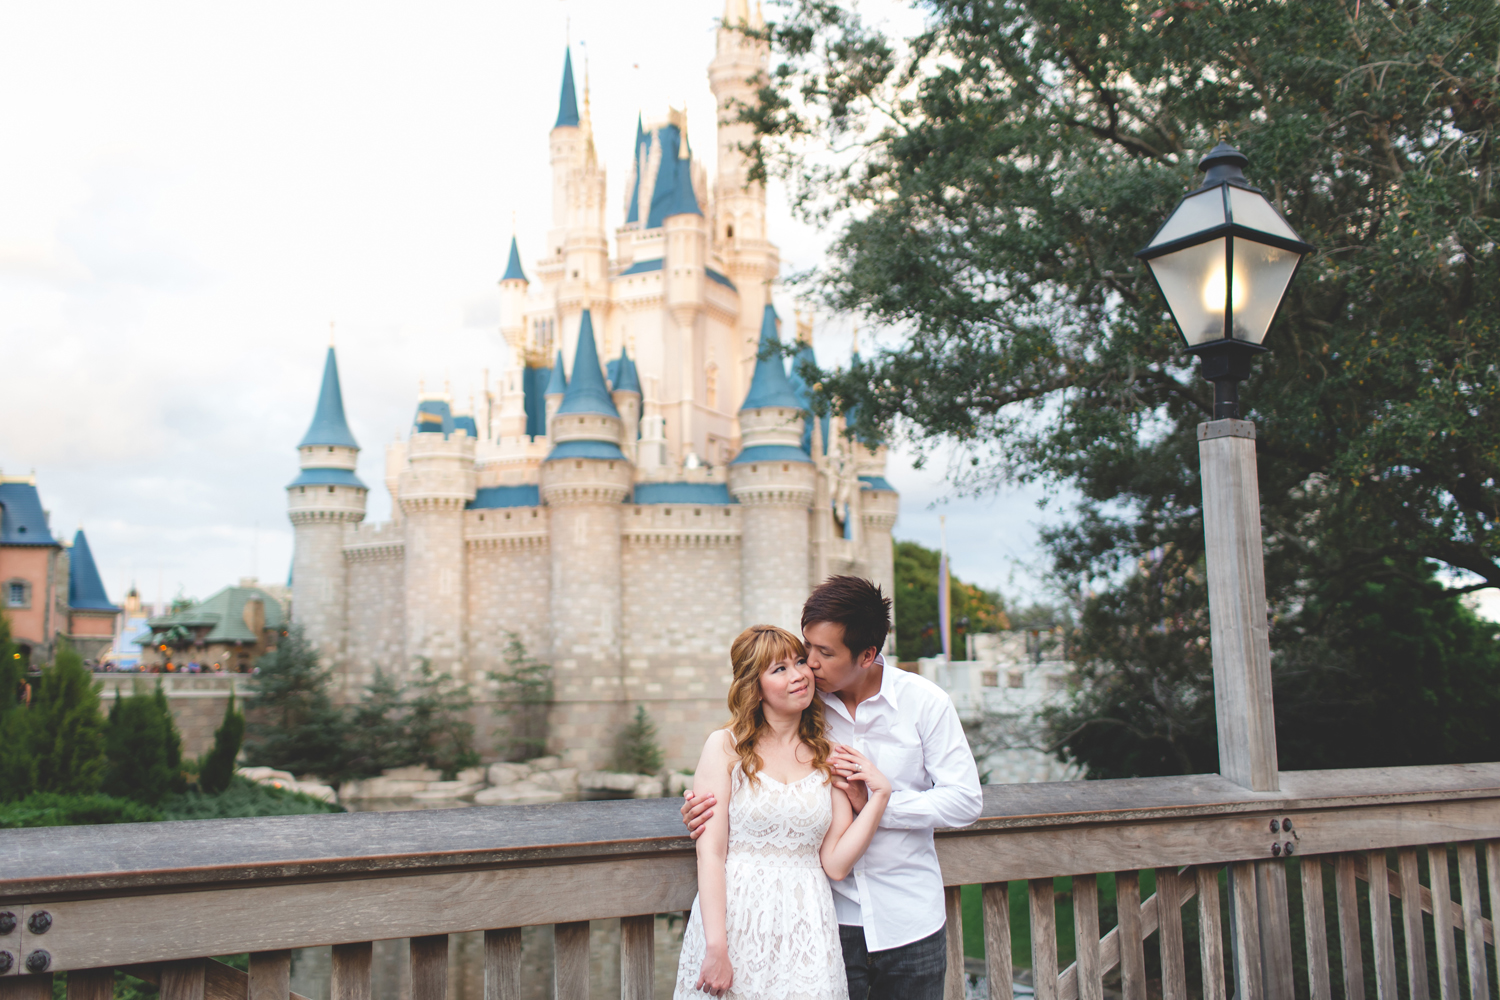 Disney Honeymoon session - Disney Engagement Photos - Disney Wedding Photographer - Destination Orlando Wedding Photographer - Jaime DiOrio (58).jpg